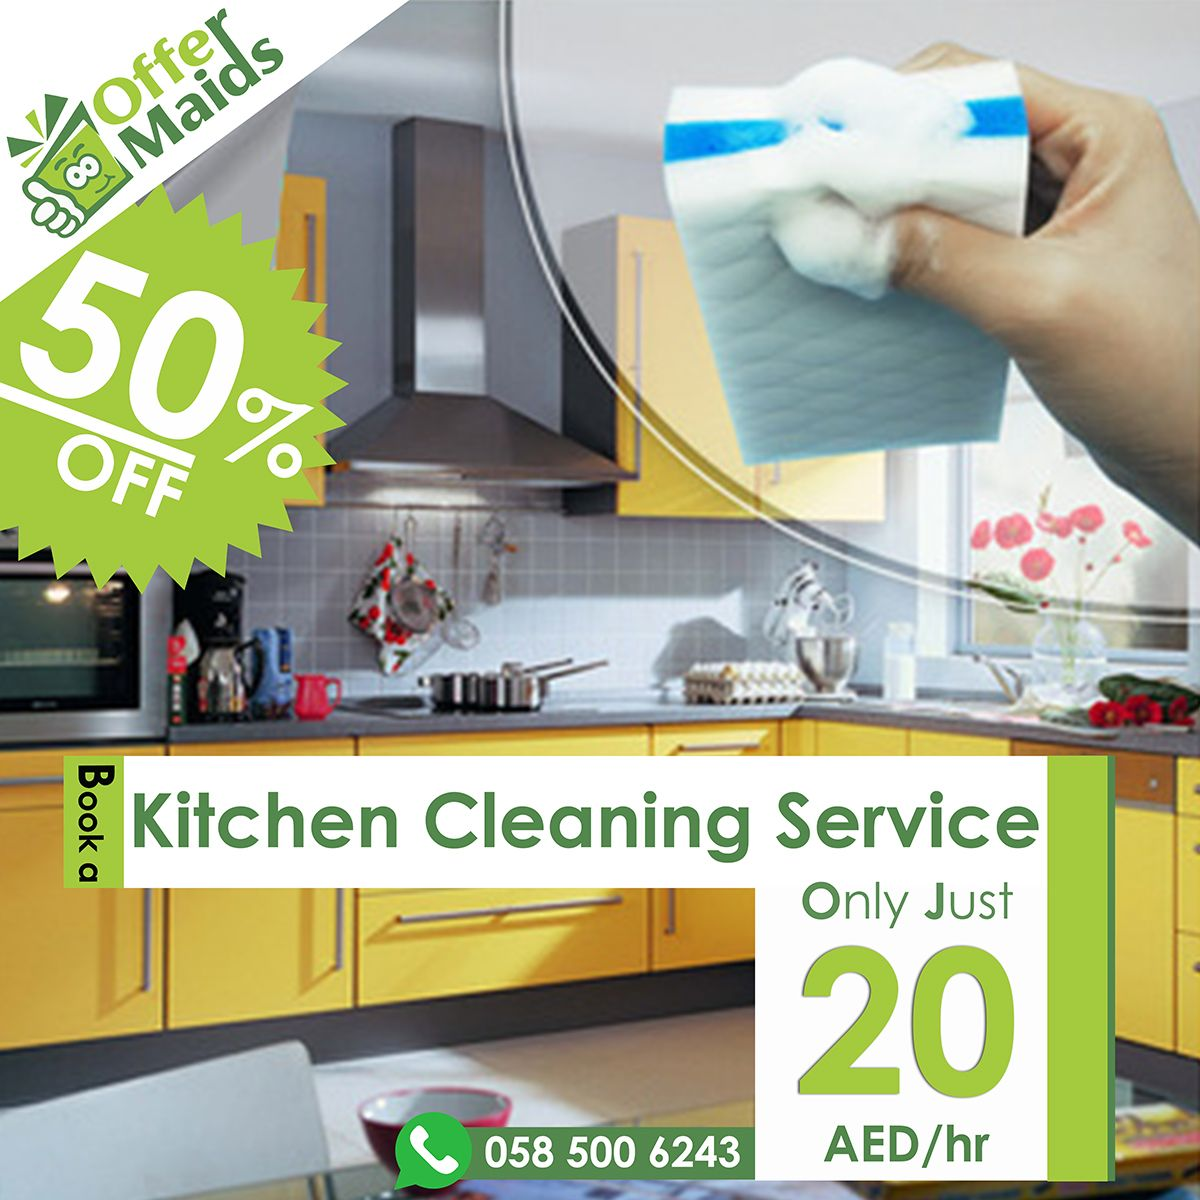 Reach us @ www offermaids com 058 500 6243 Cleaning